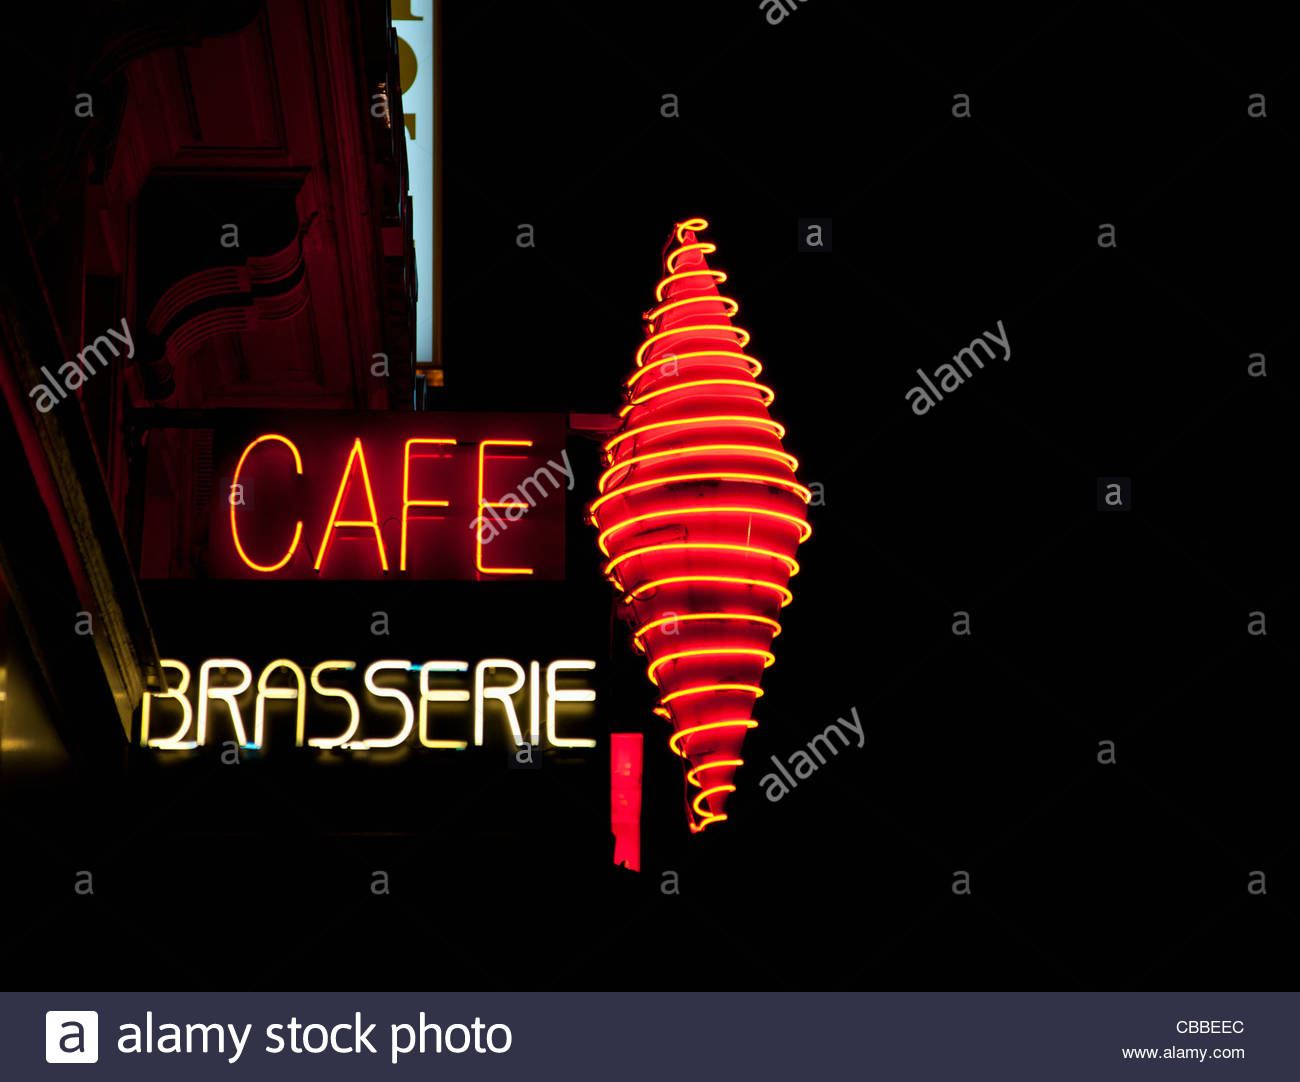 Neon cafe sign - Stock Image